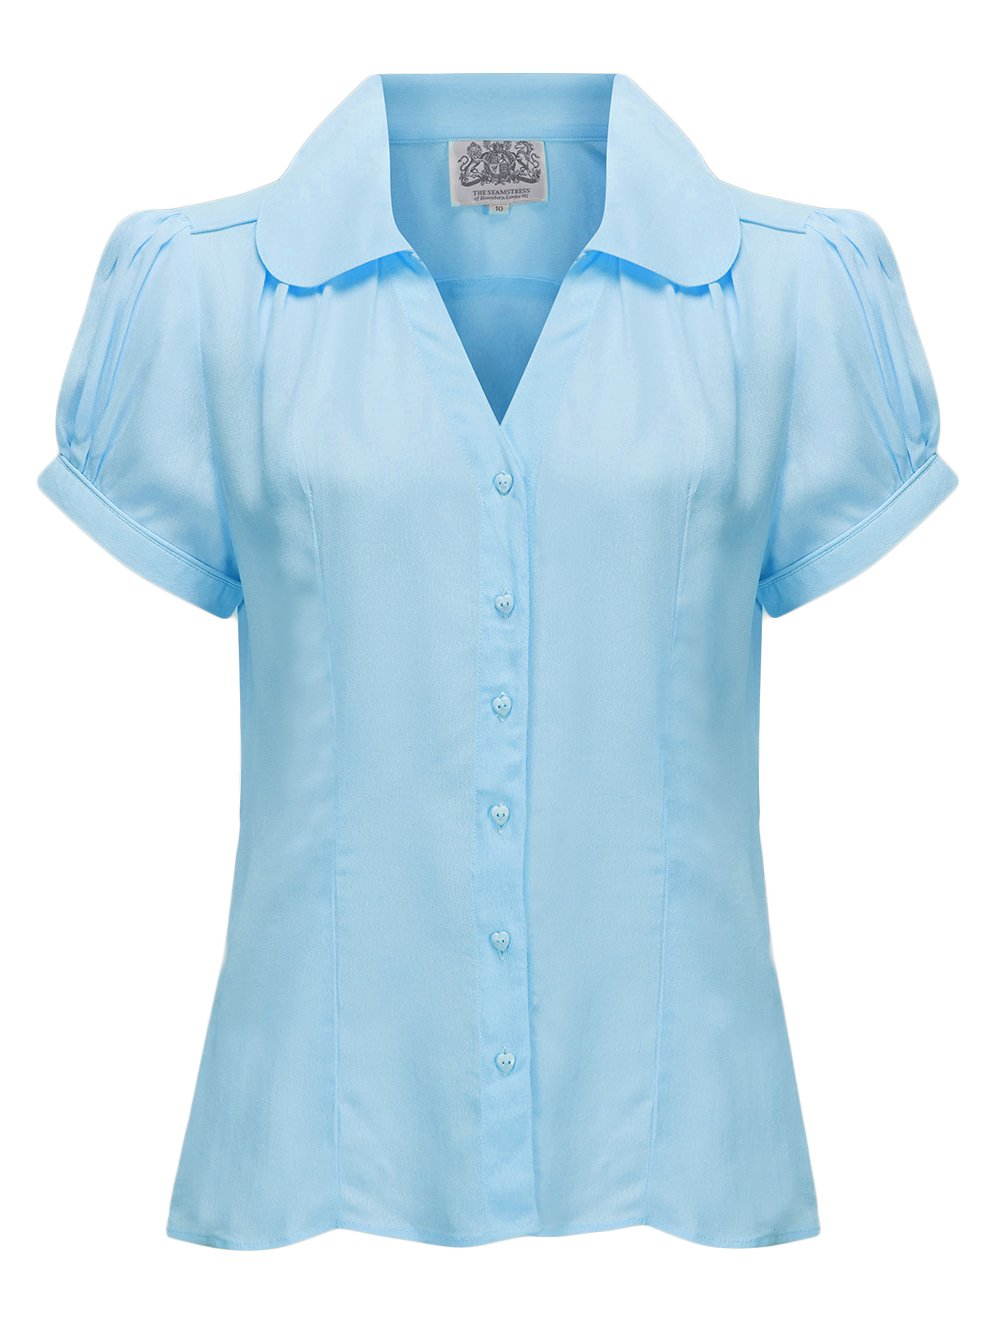 "The 1940s Vintage Inspired ""Judy"" Blouse in Powder Blue by The Seamstress Of Bloomsbury"